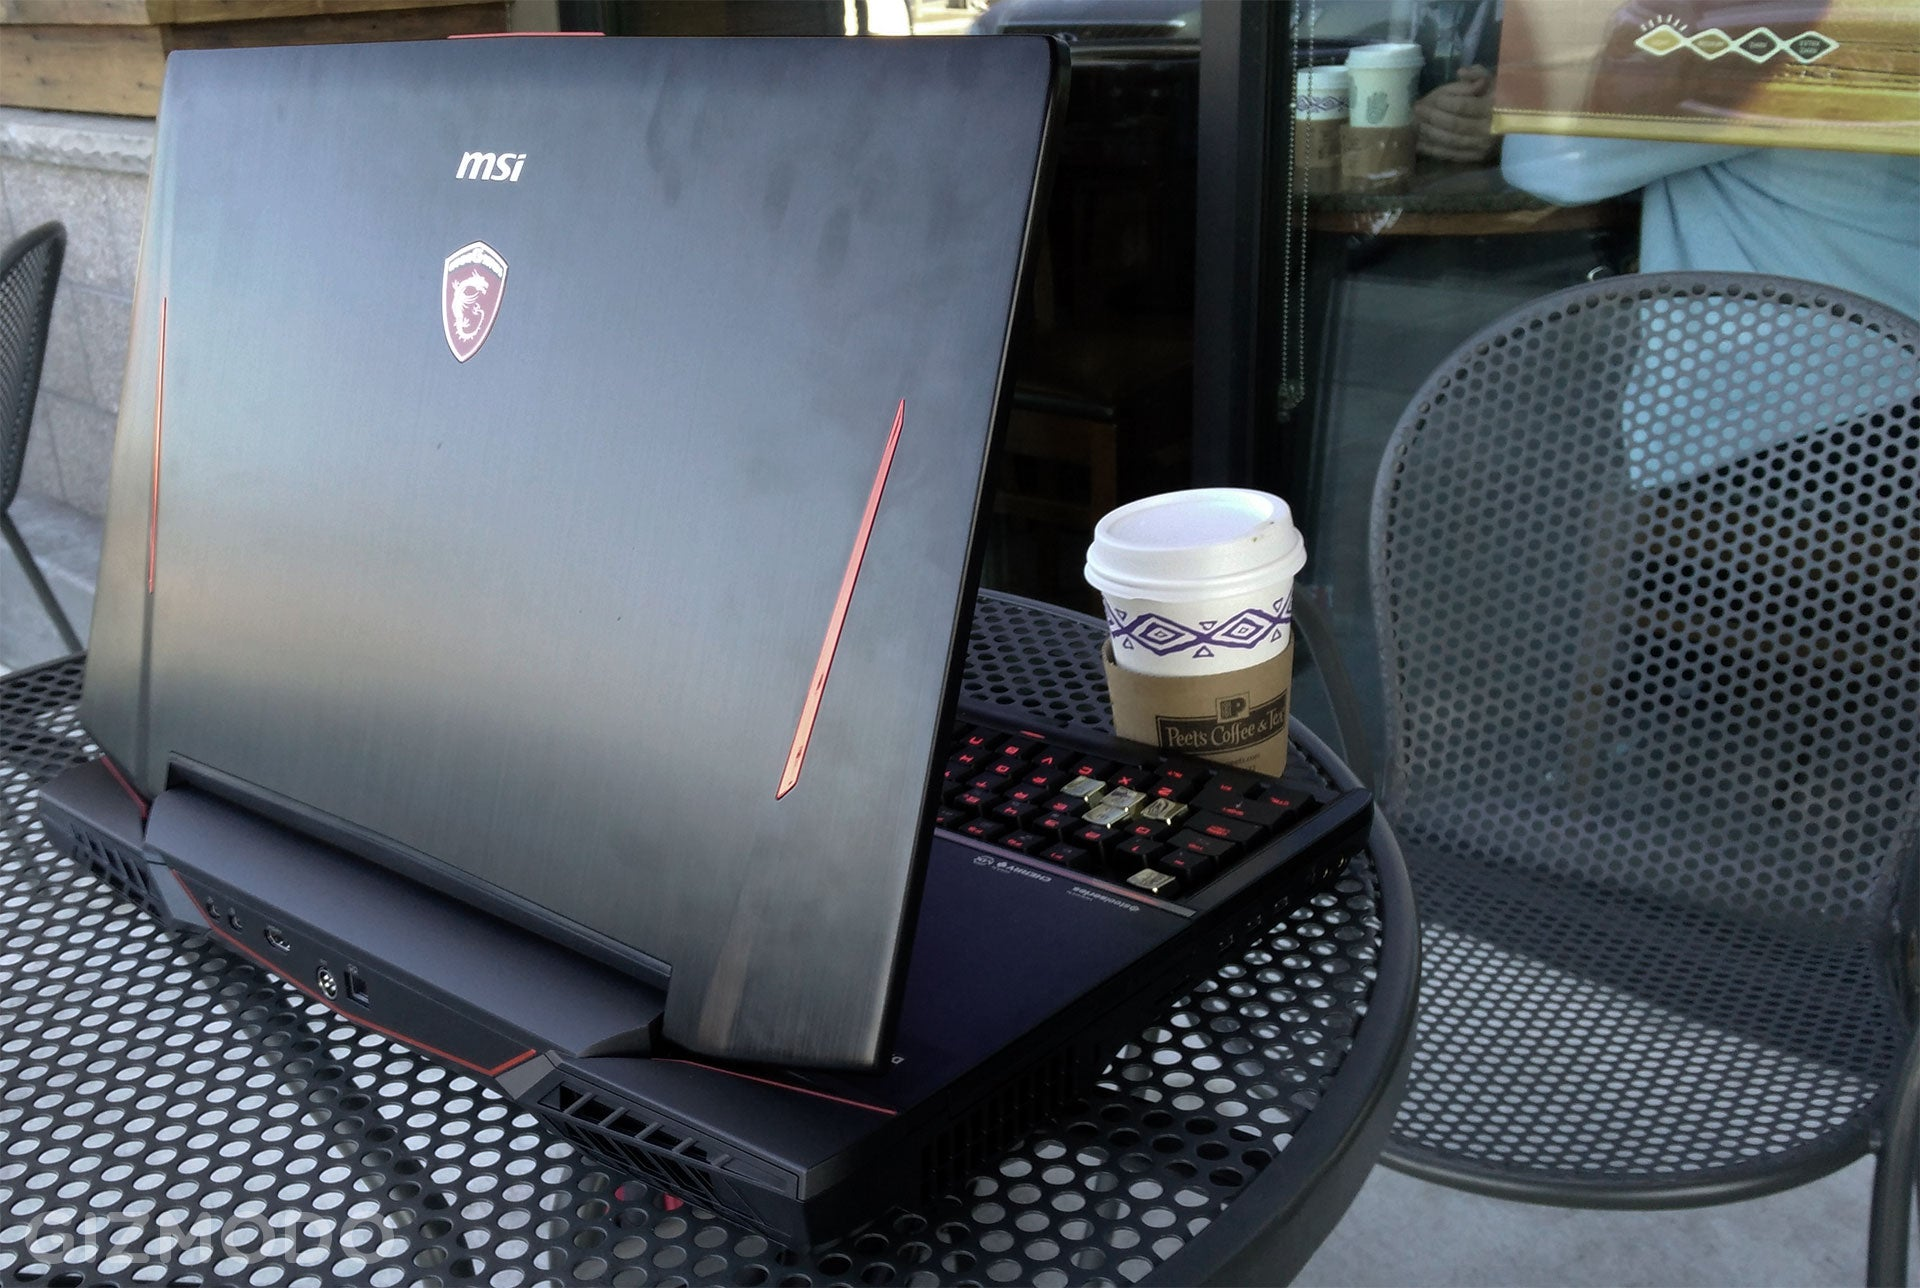 Review: This Laptop With a Mechanical Keyboard Is Delightfully Crazy